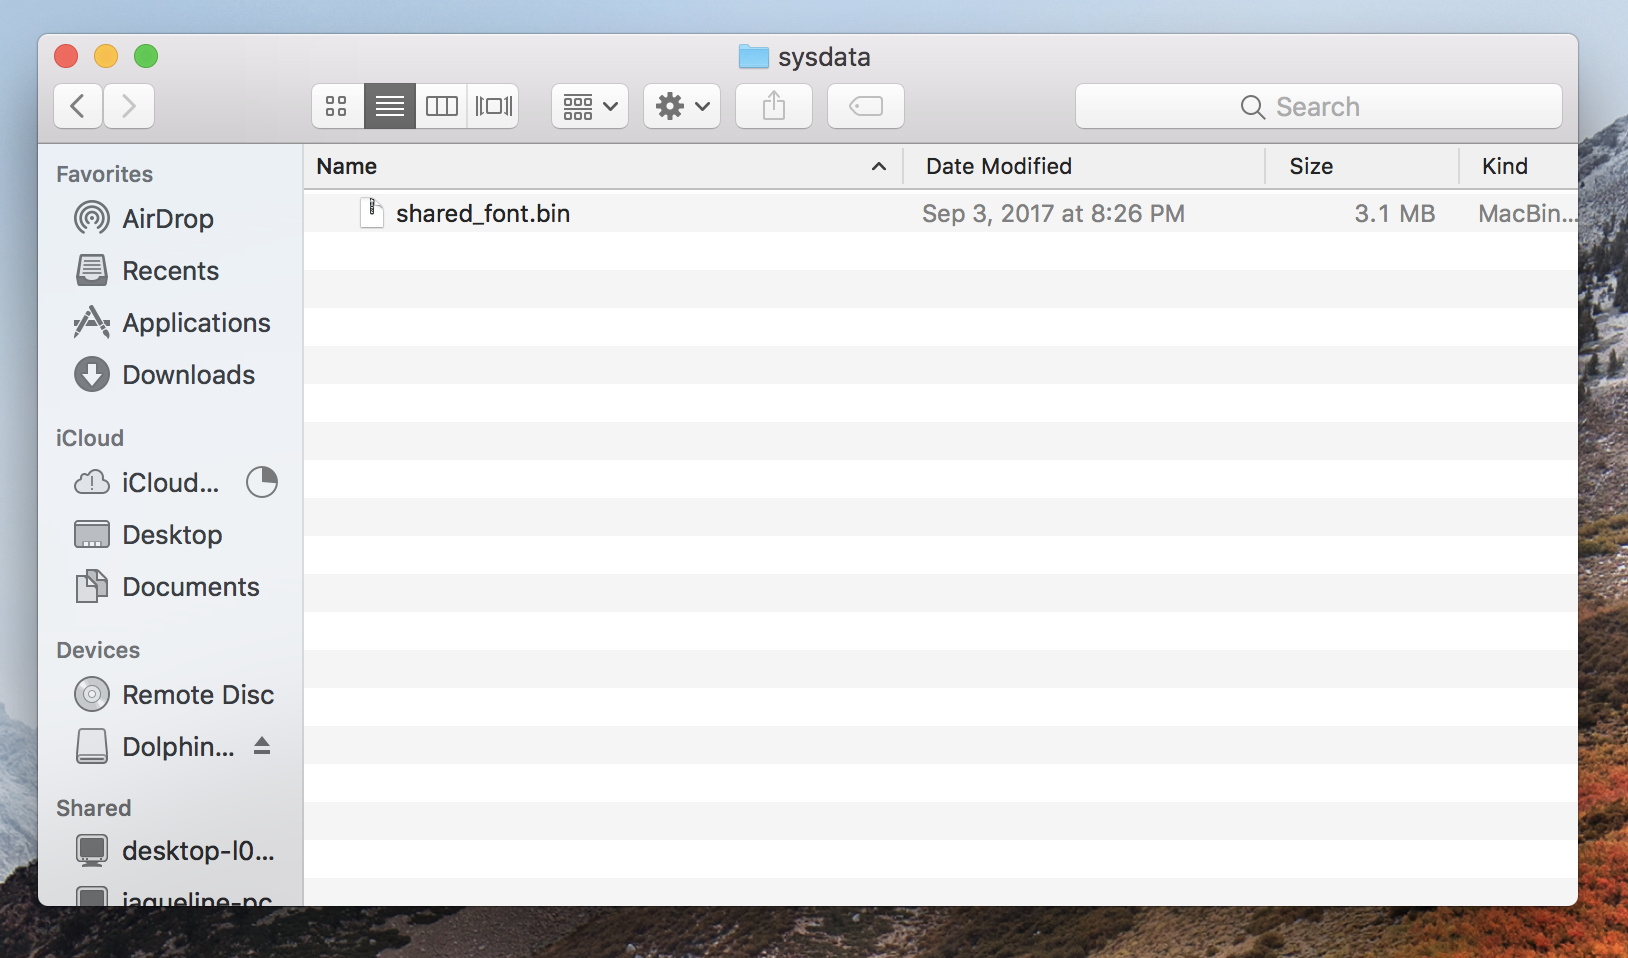 How To Install Roms On Citra For Mac - molabally's blog